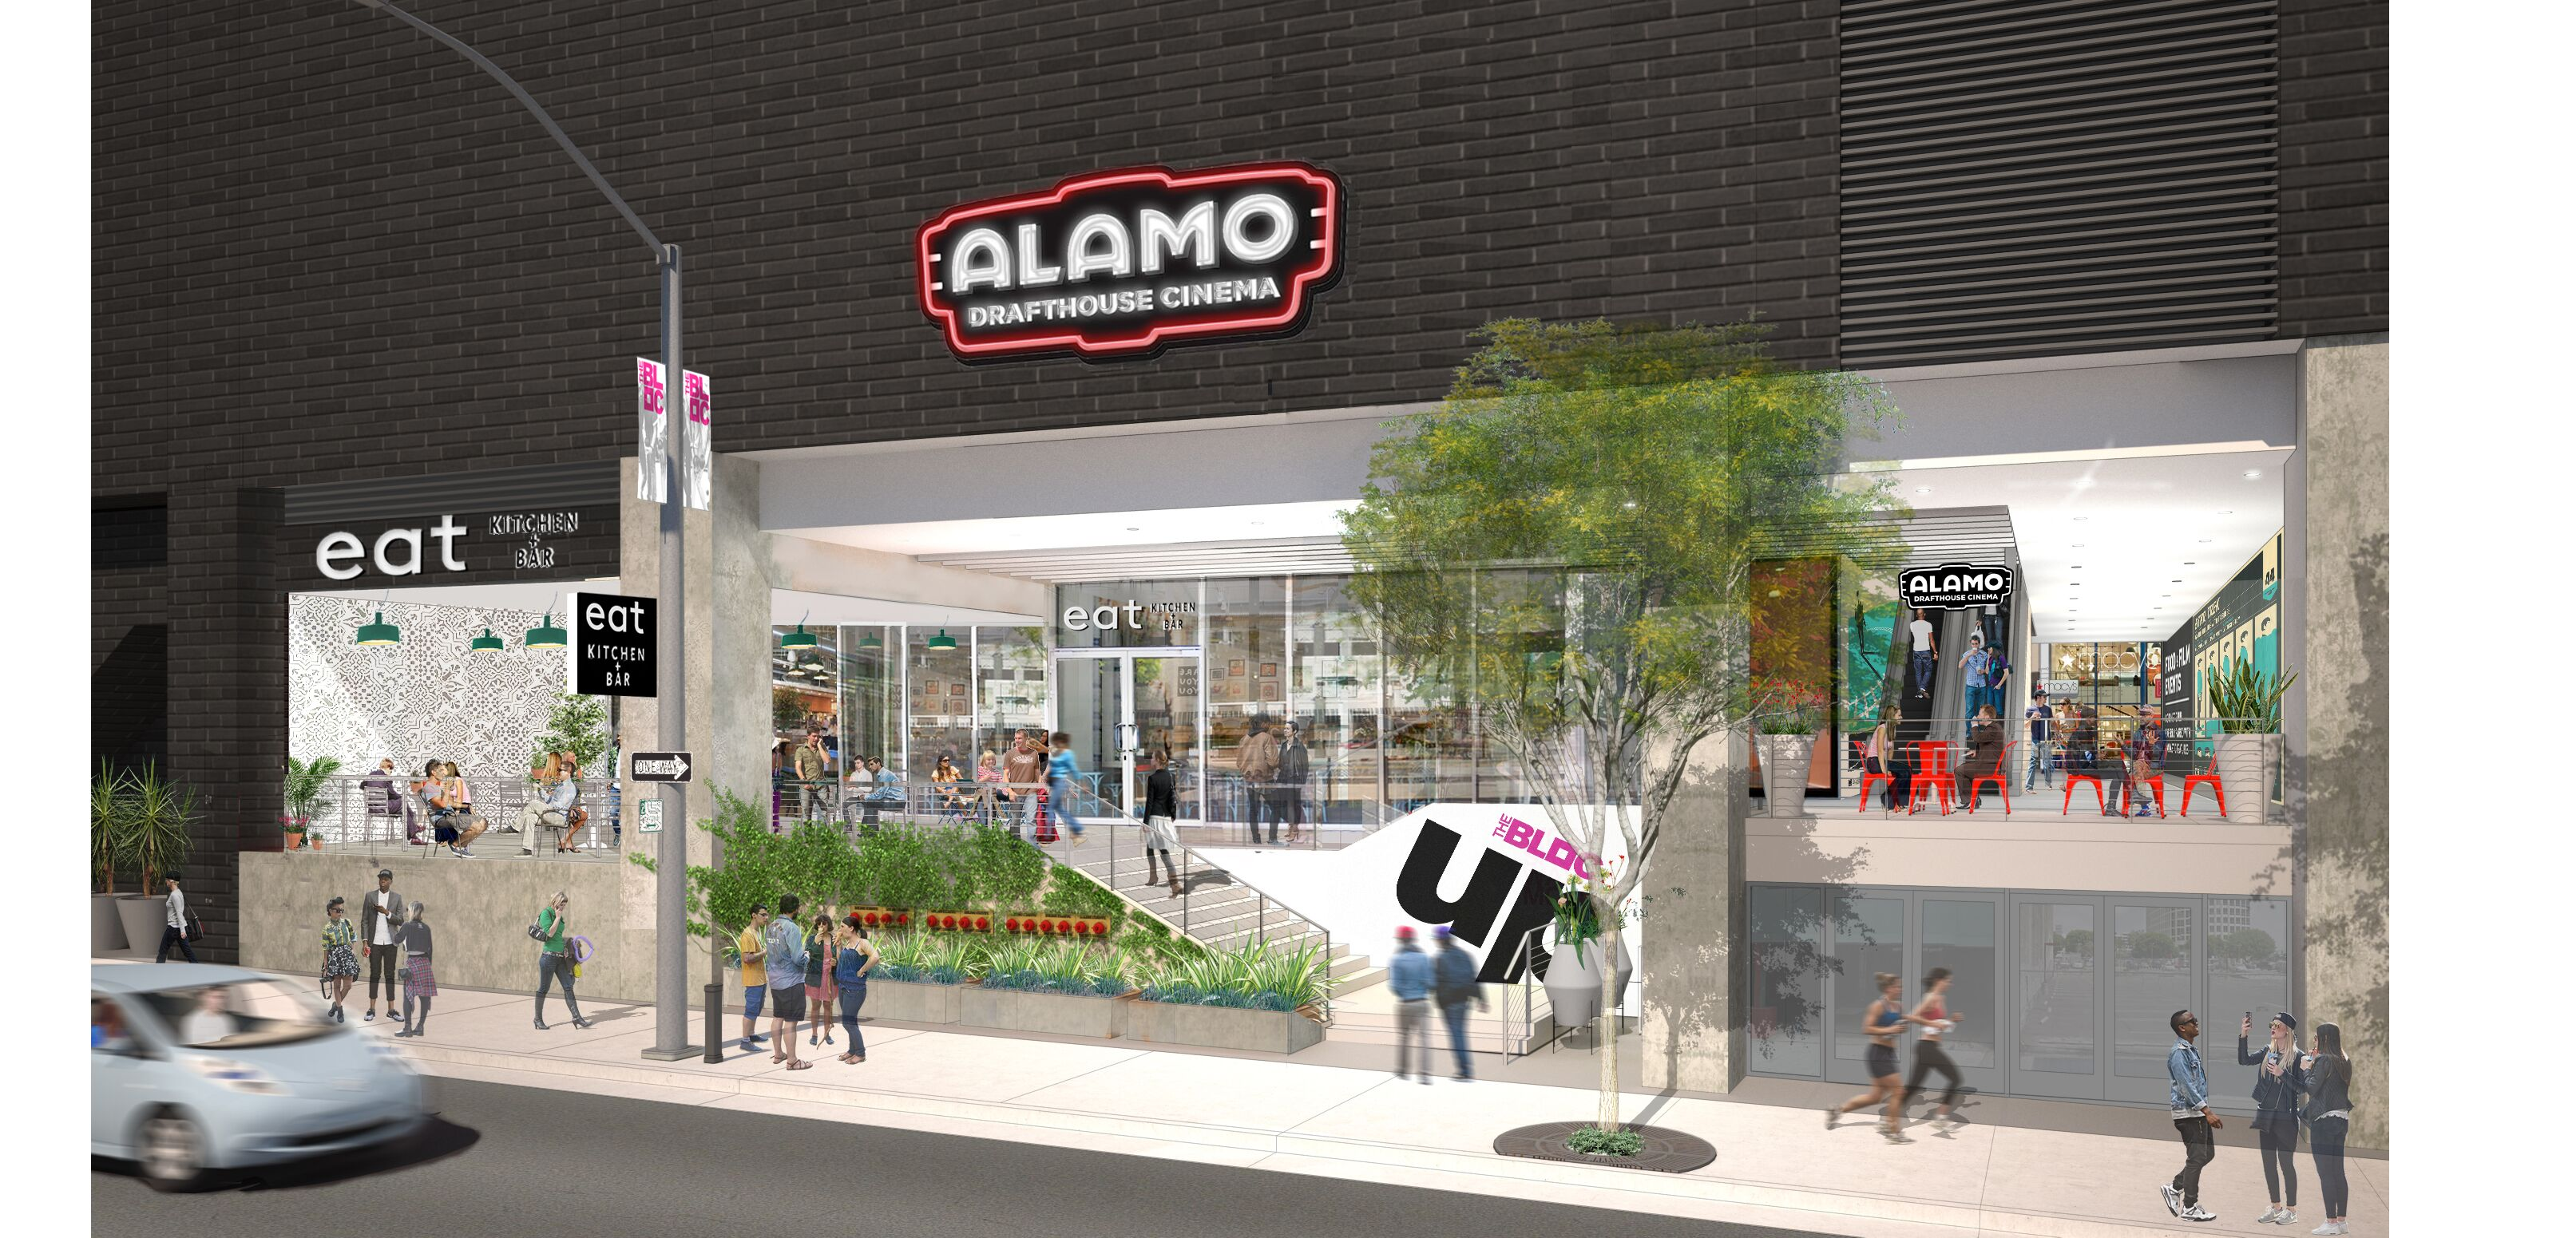 Alamo Drafthouse Los Angeles Renderings (Credit Studio One Eleven)